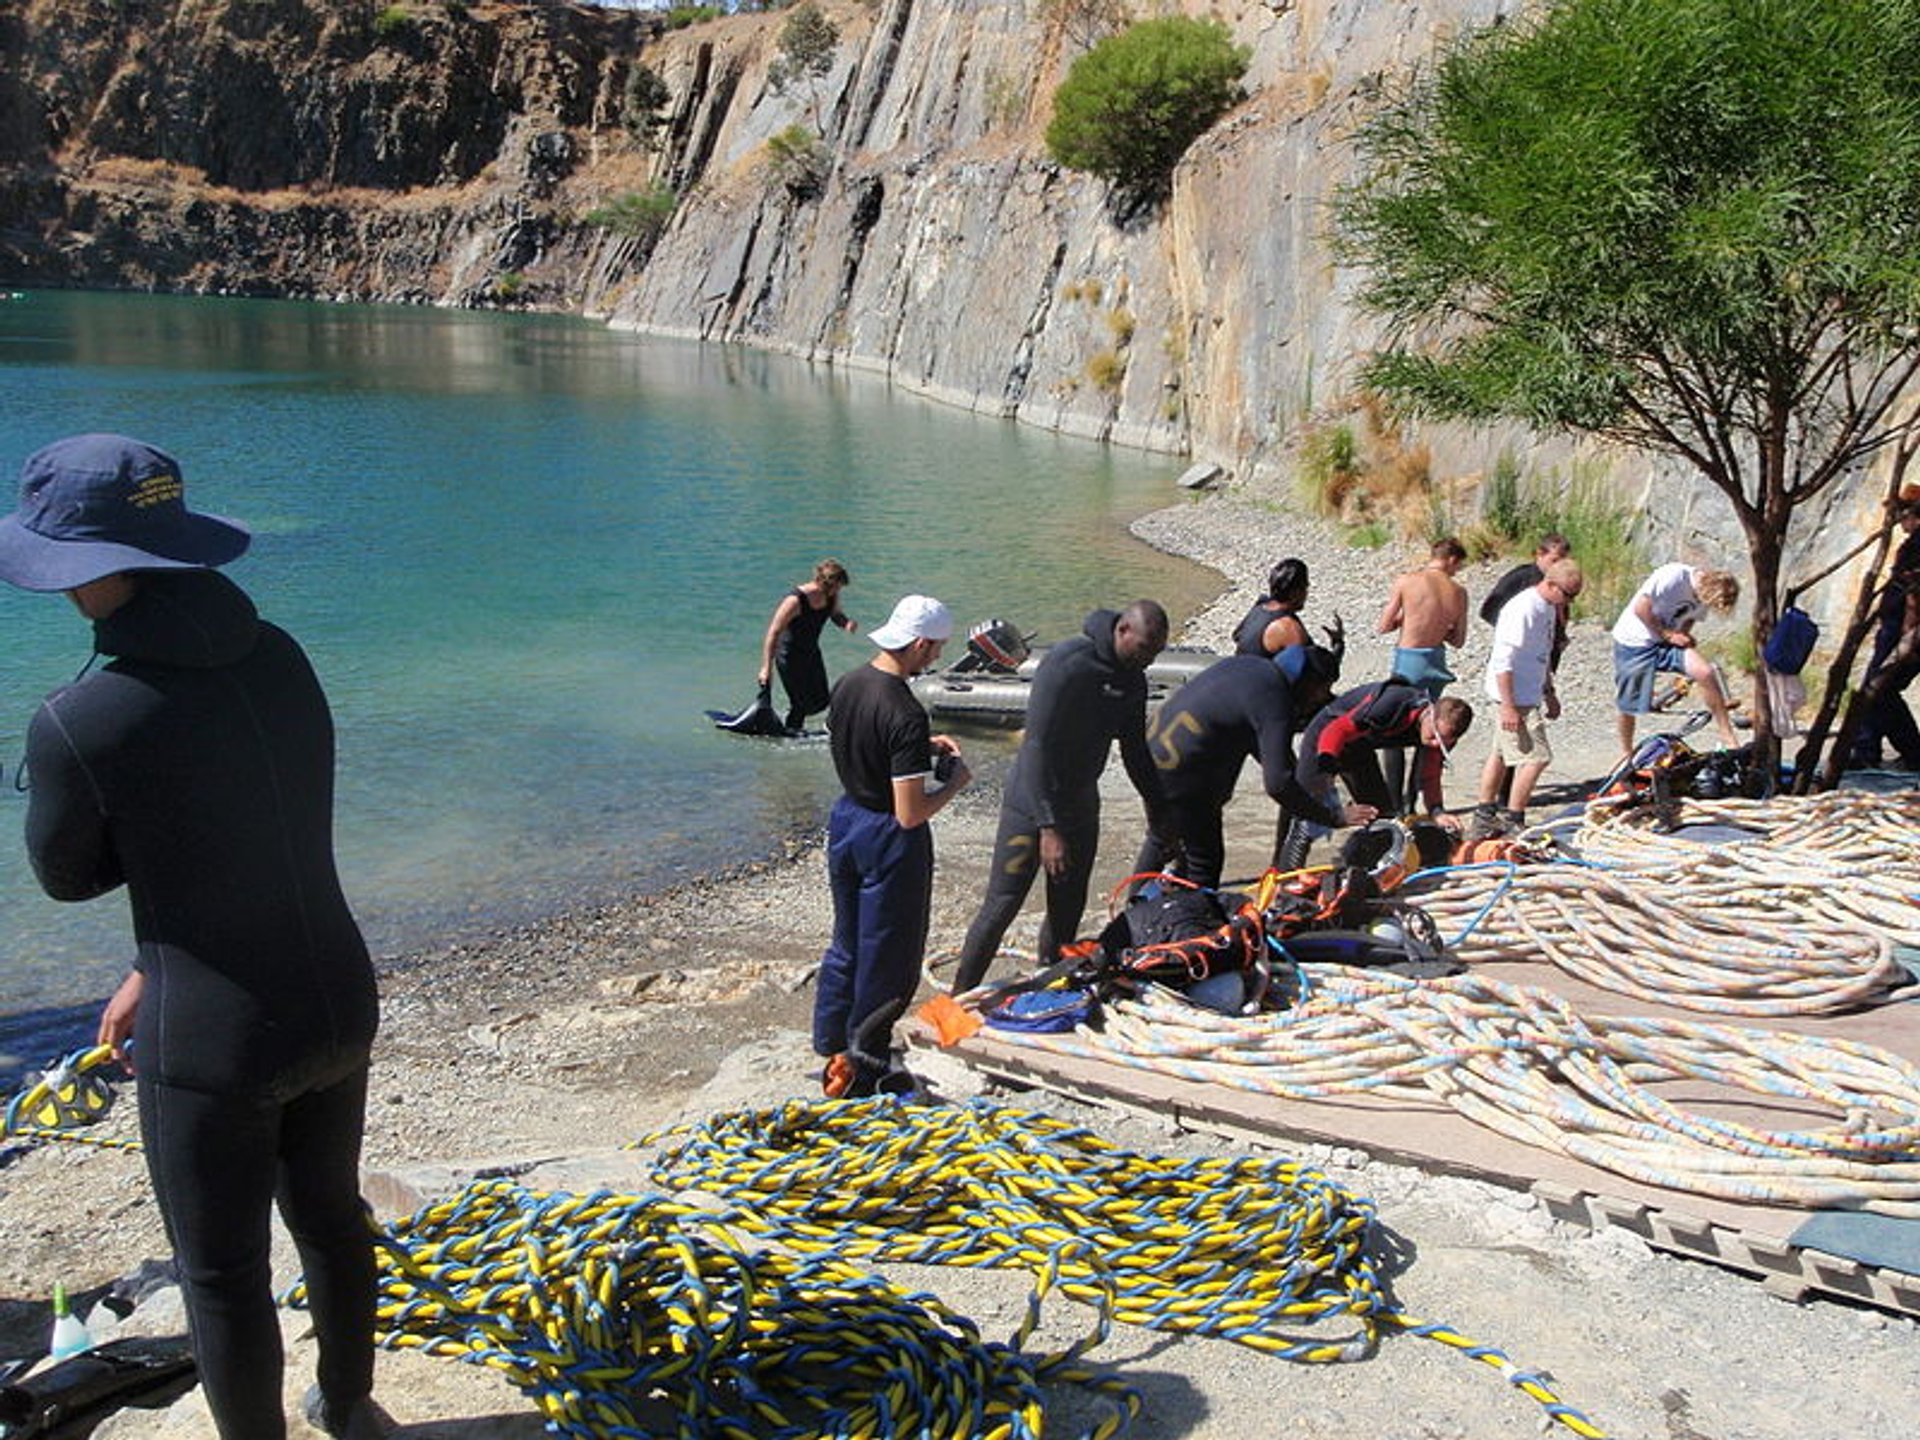 Commercial diver training at Blue Rock Quarry, Gordon's Bay